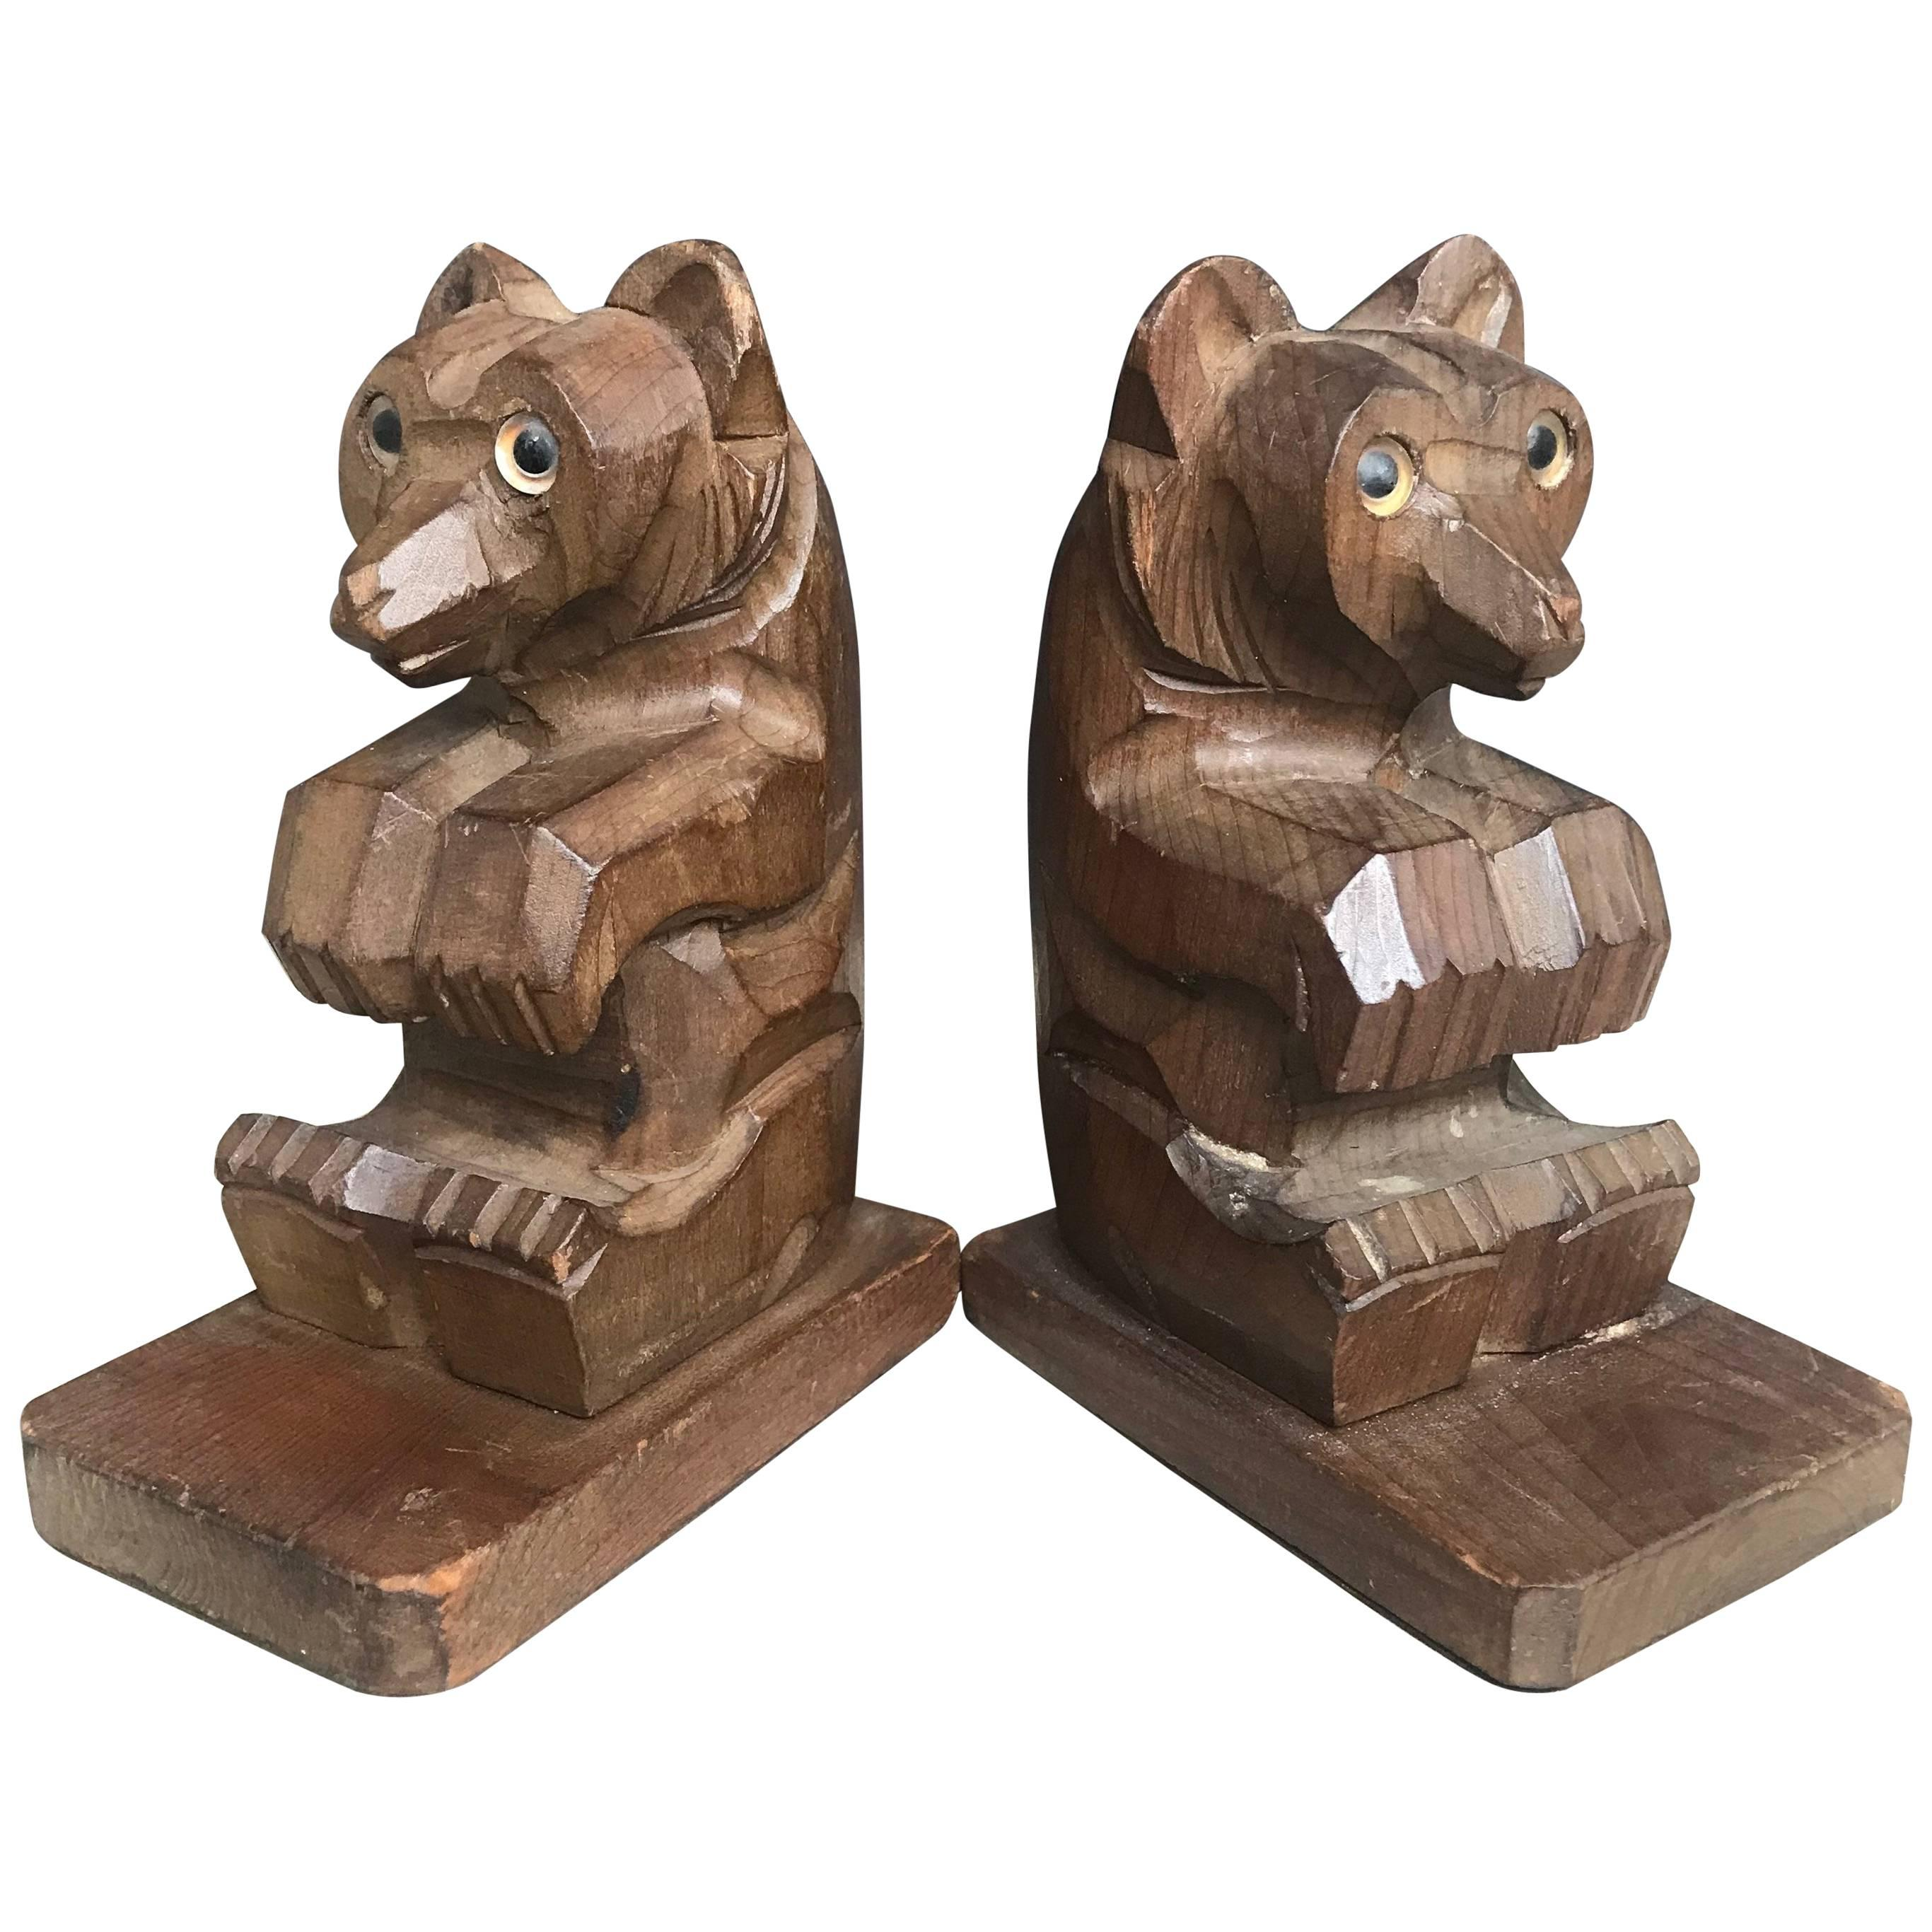 Highly Decorative Pair Of Hand Carved Art Deco Era, Wooden Sitting Bear  Bookends